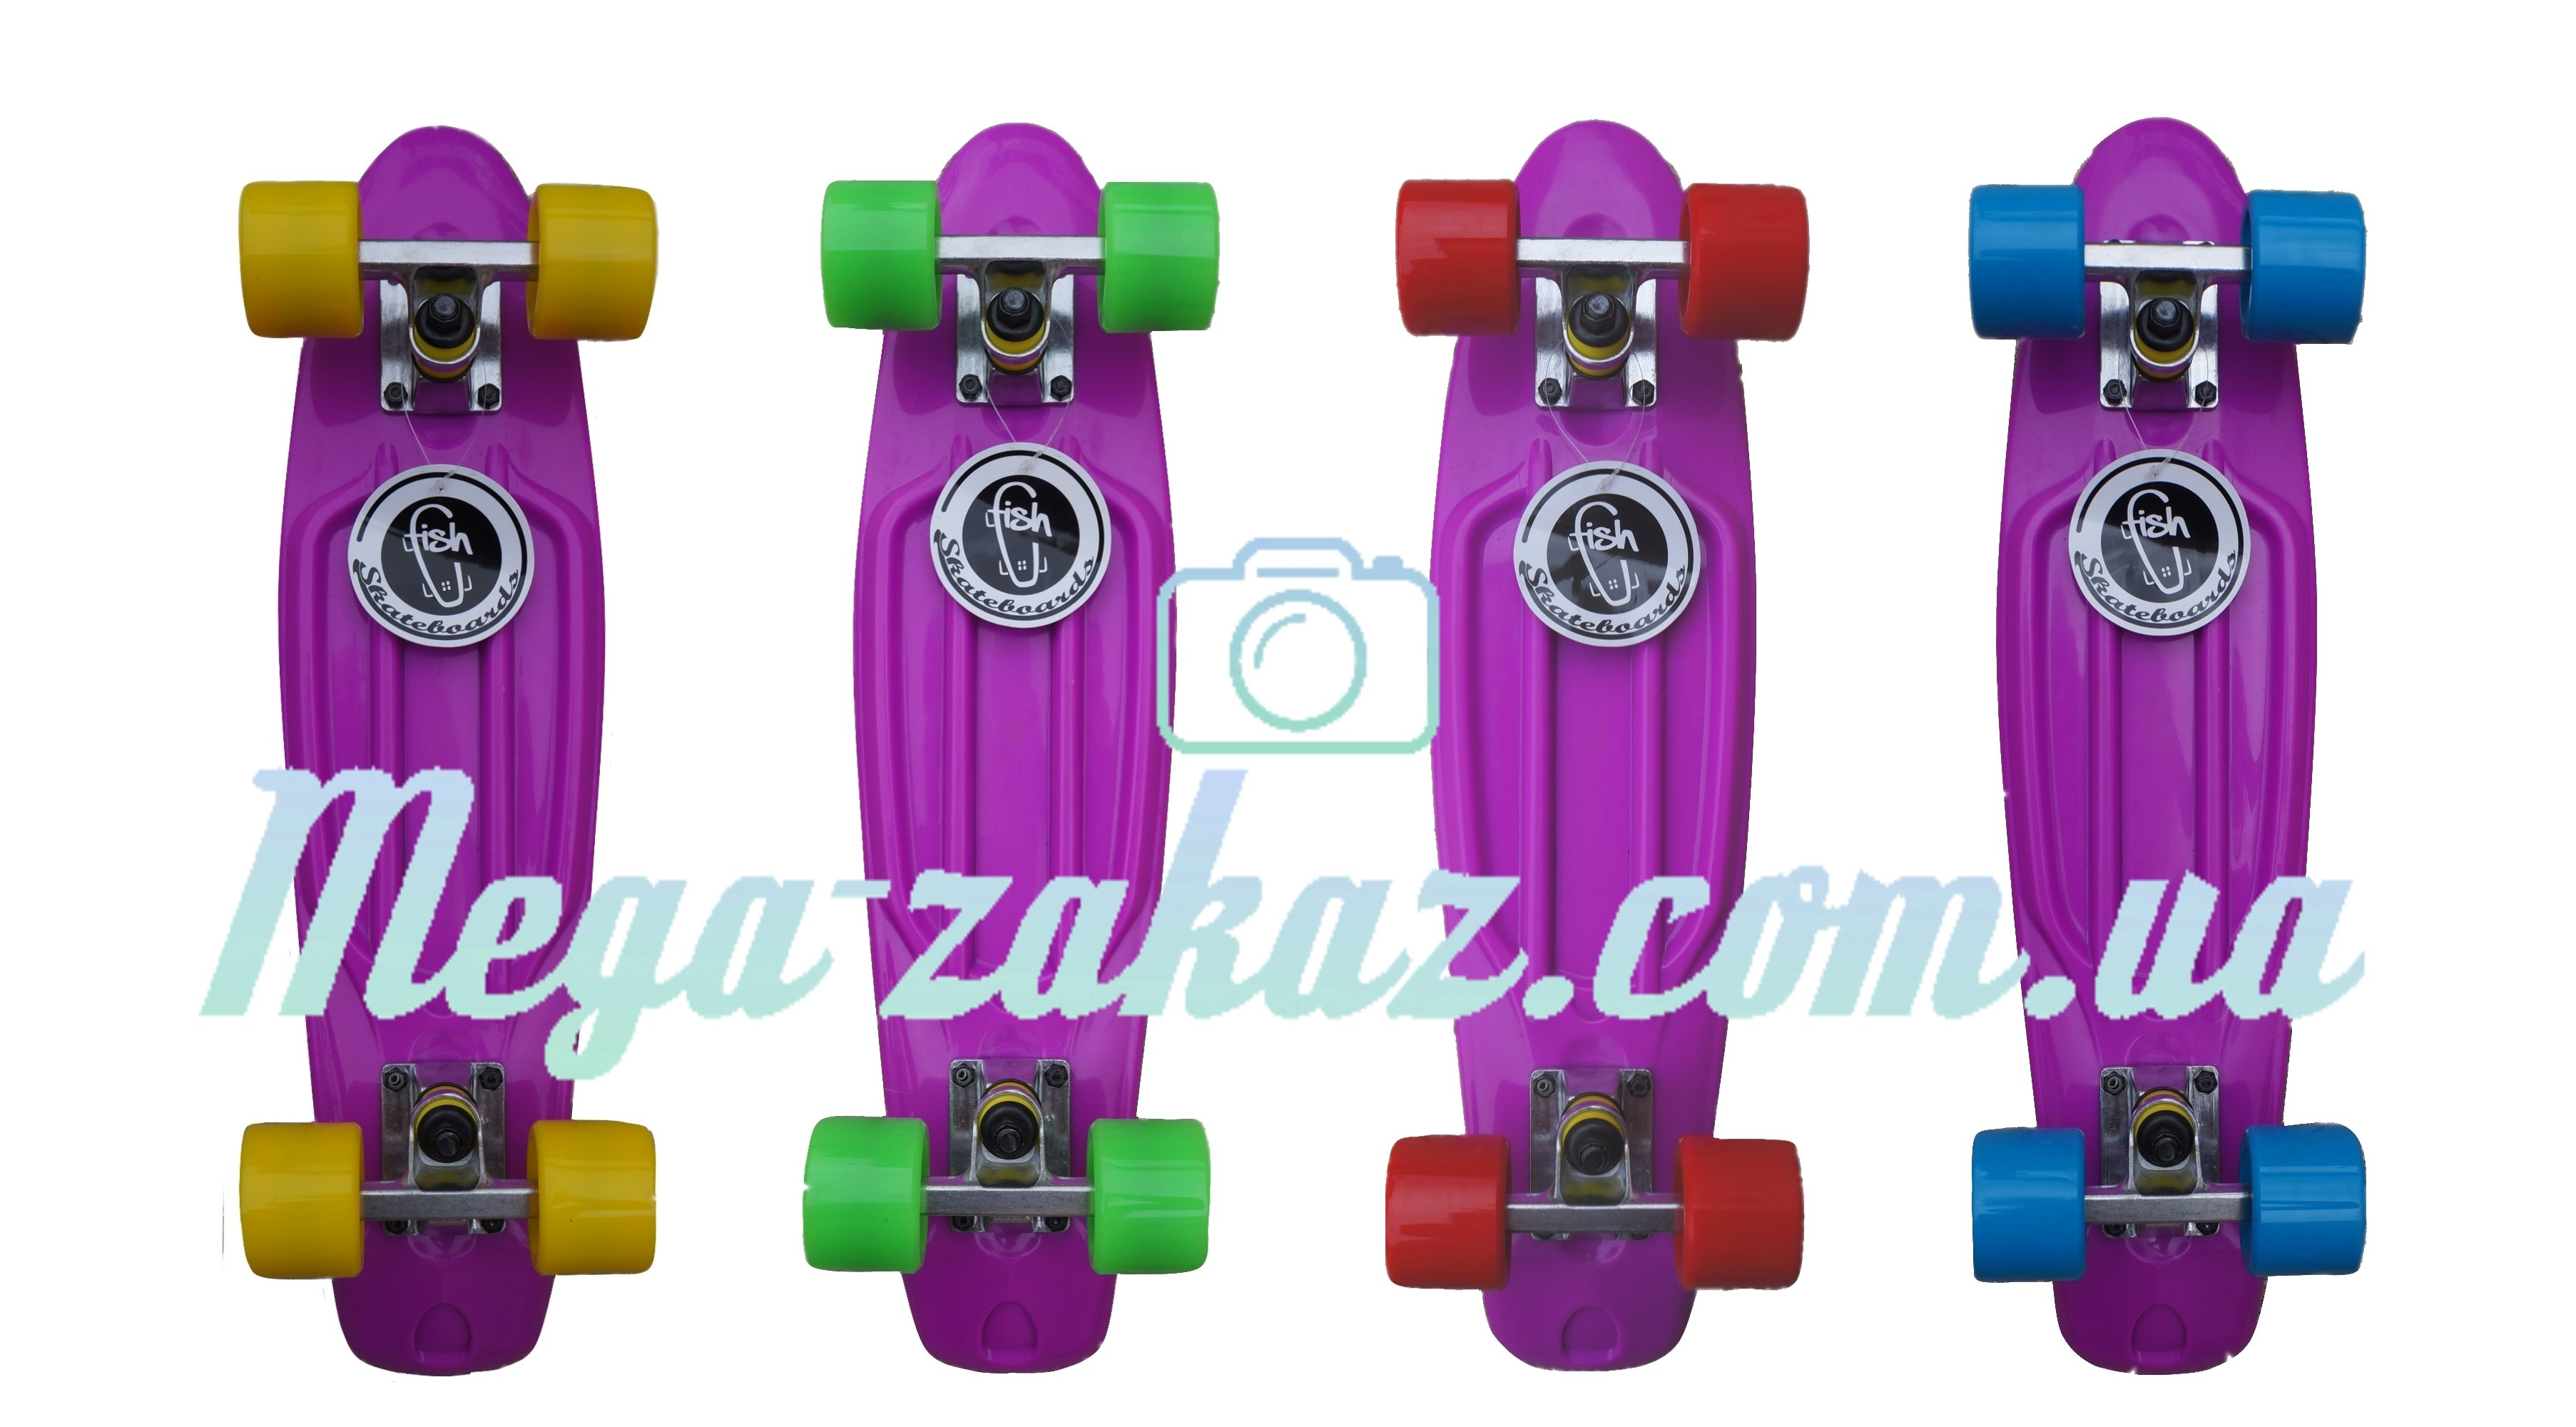 https://mega-zakaz.com.ua/images/upload/penny%20board%20violet%20collectionZAKAZ.jpg